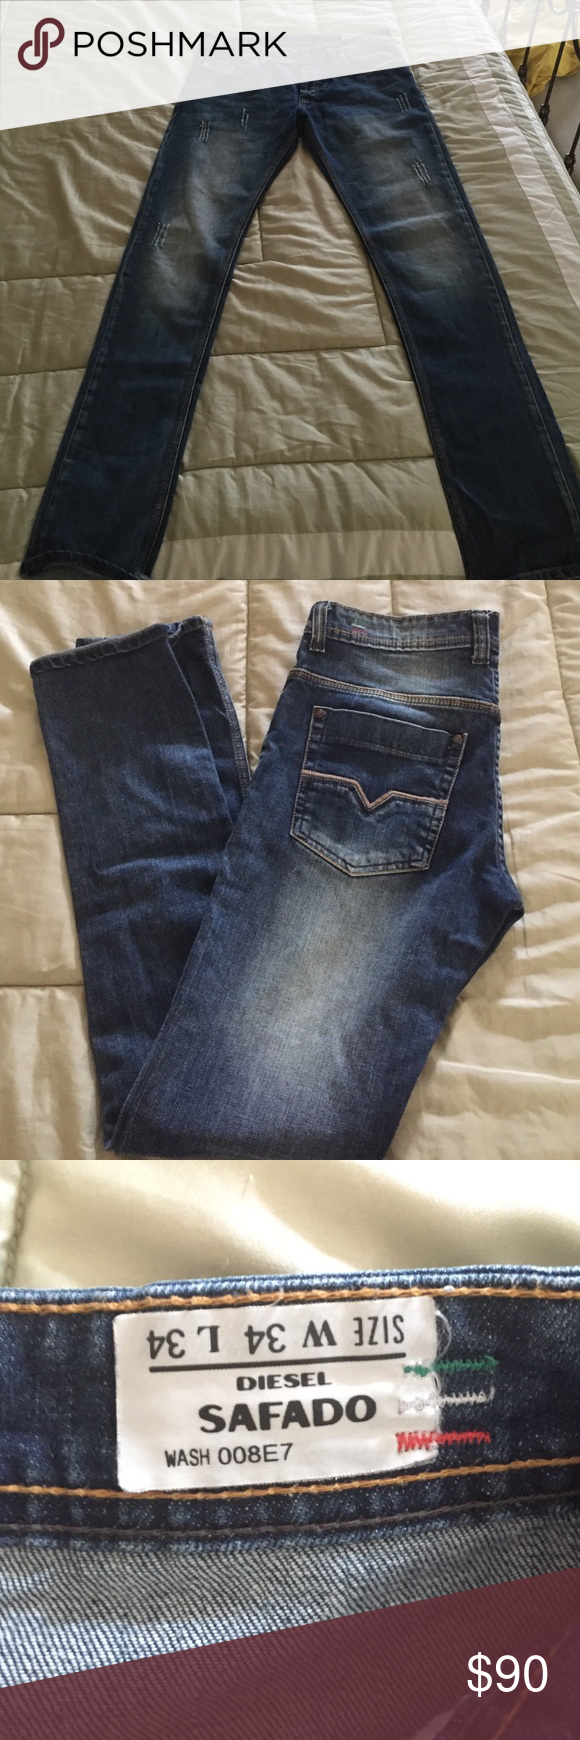 Diesel Safado Jeans For men. Size 34W and 34L. Wash 008E7. Like new! Diesel Jeans Skinny